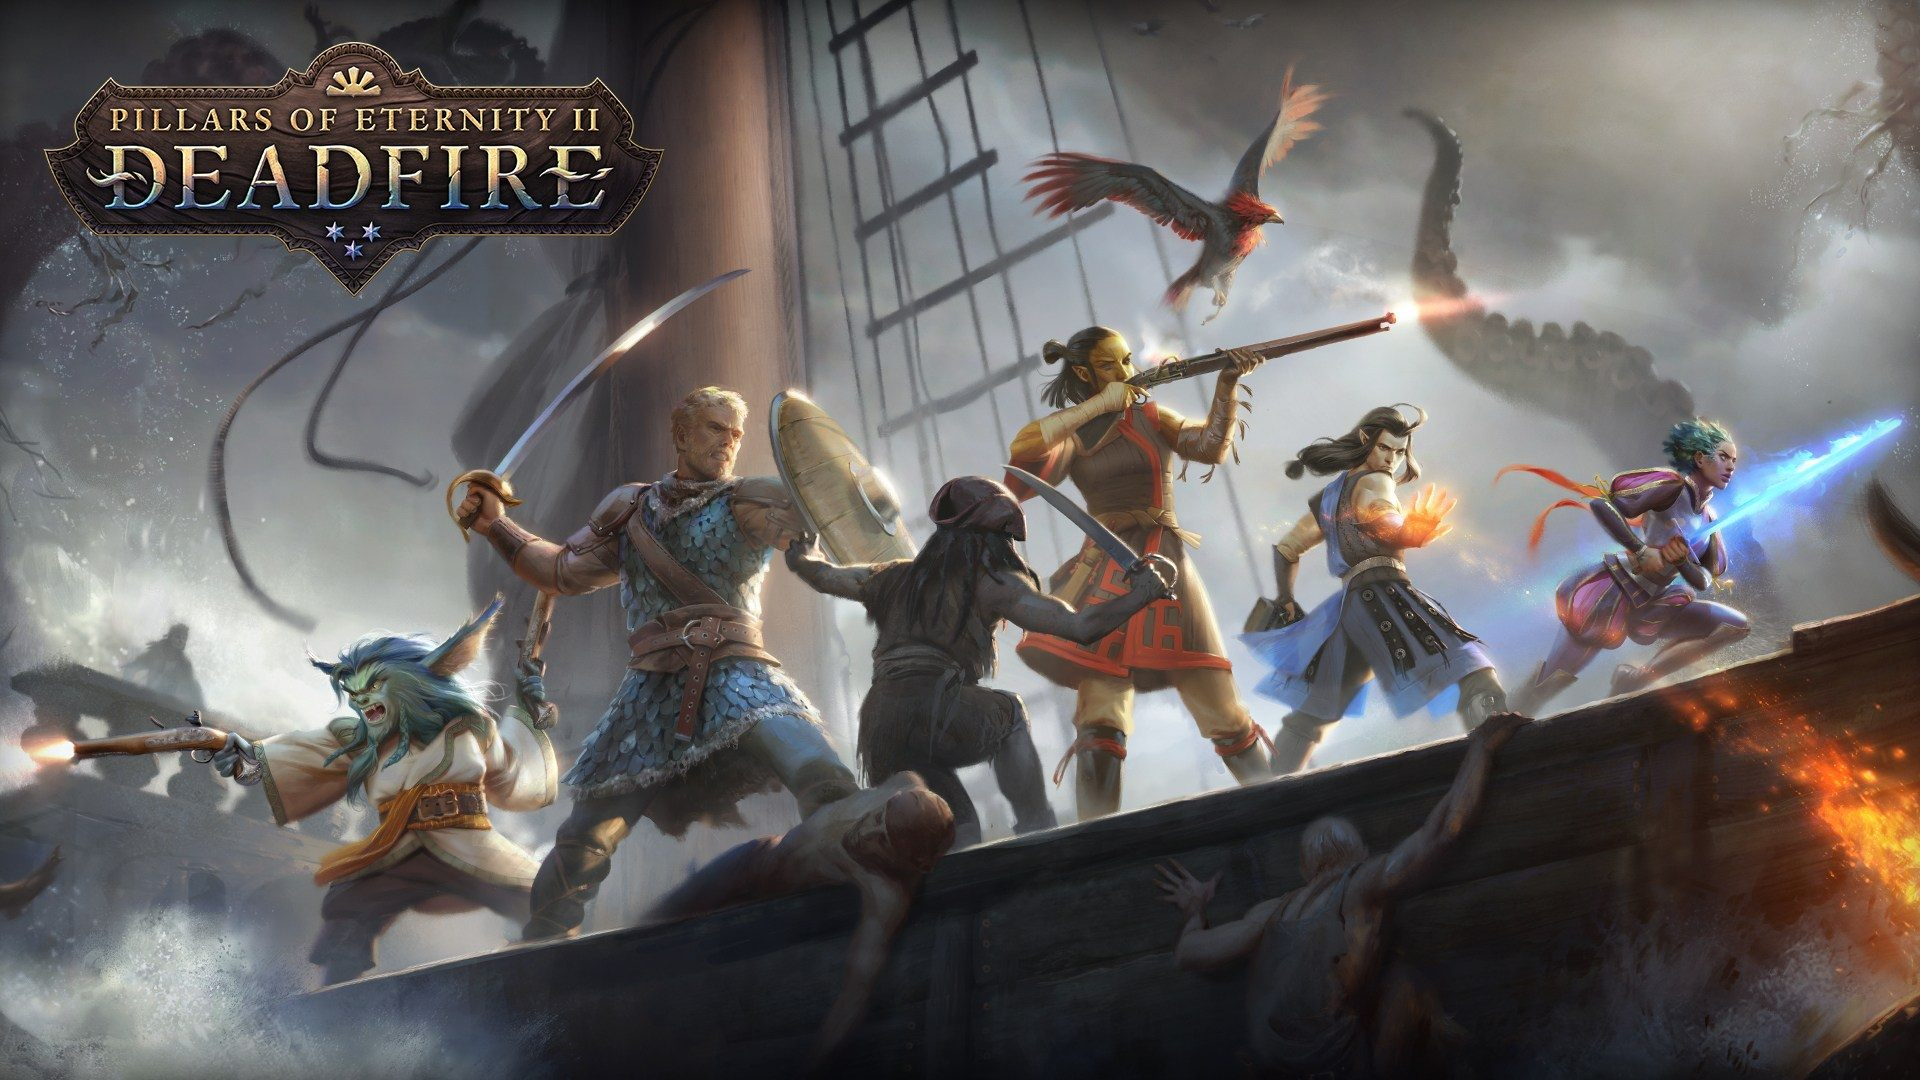 Pillars of Eternity 2 Deadfire Combat (1)